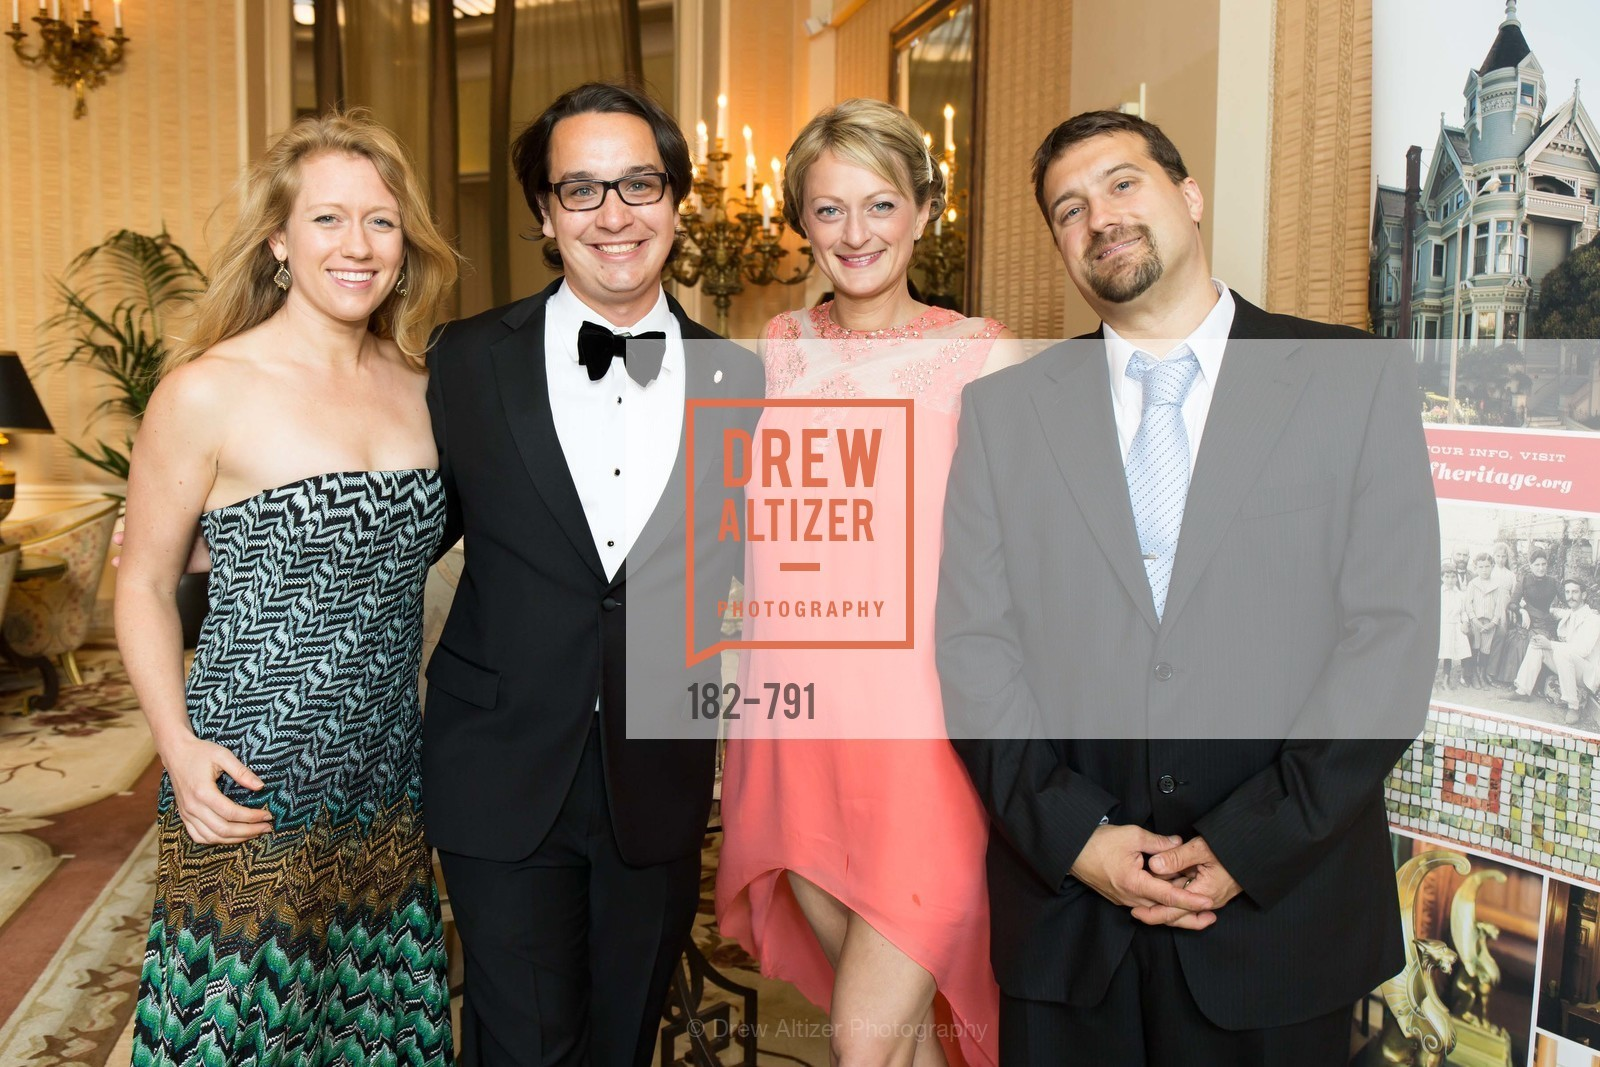 Kristina Nugent, Christopher Wiseman, Holly Goodin, John Adams, SAN FRANCISCO HERITAGE Soiree 2015, US, April 18th, 2015,Drew Altizer, Drew Altizer Photography, full-service agency, private events, San Francisco photographer, photographer california